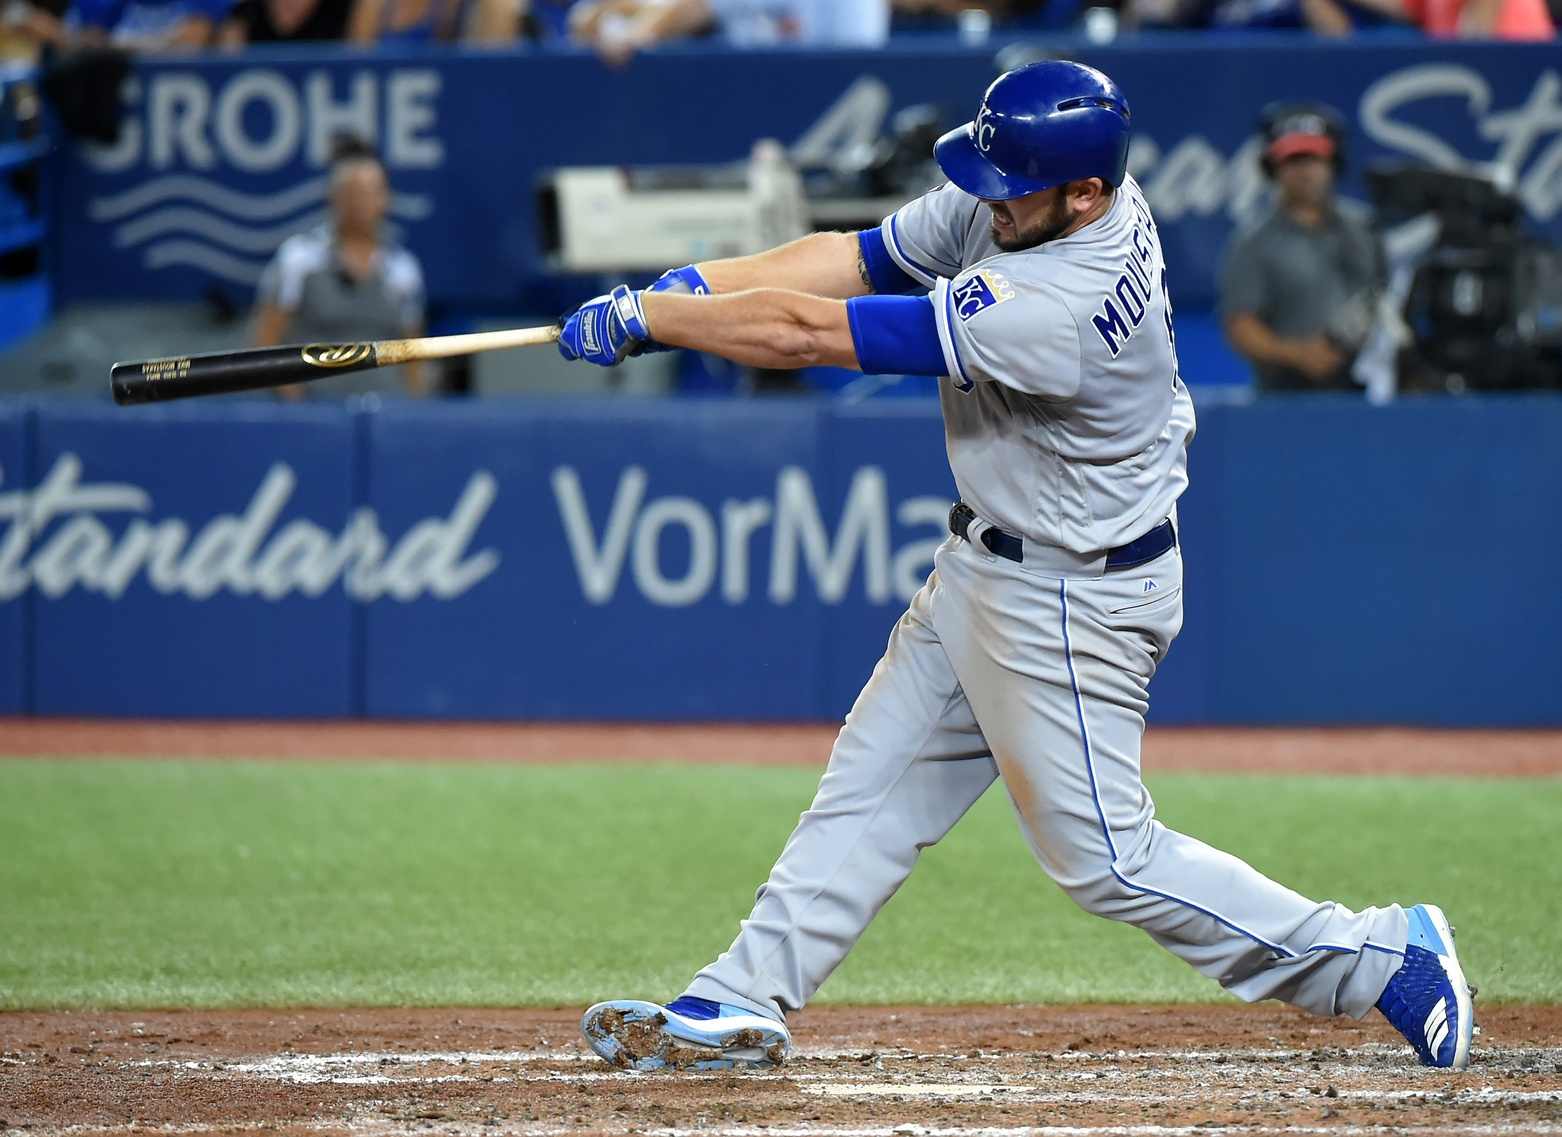 Sep 20, 2017; Toronto, Ontario, CAN; Kansas City Royals third baseman Mike Moustakas (8) hits a home run against the Toronto Blue Jays in the sixth inning at Rogers Centre. Mandatory Credit: Dan Hamilton-USA TODAY Sports